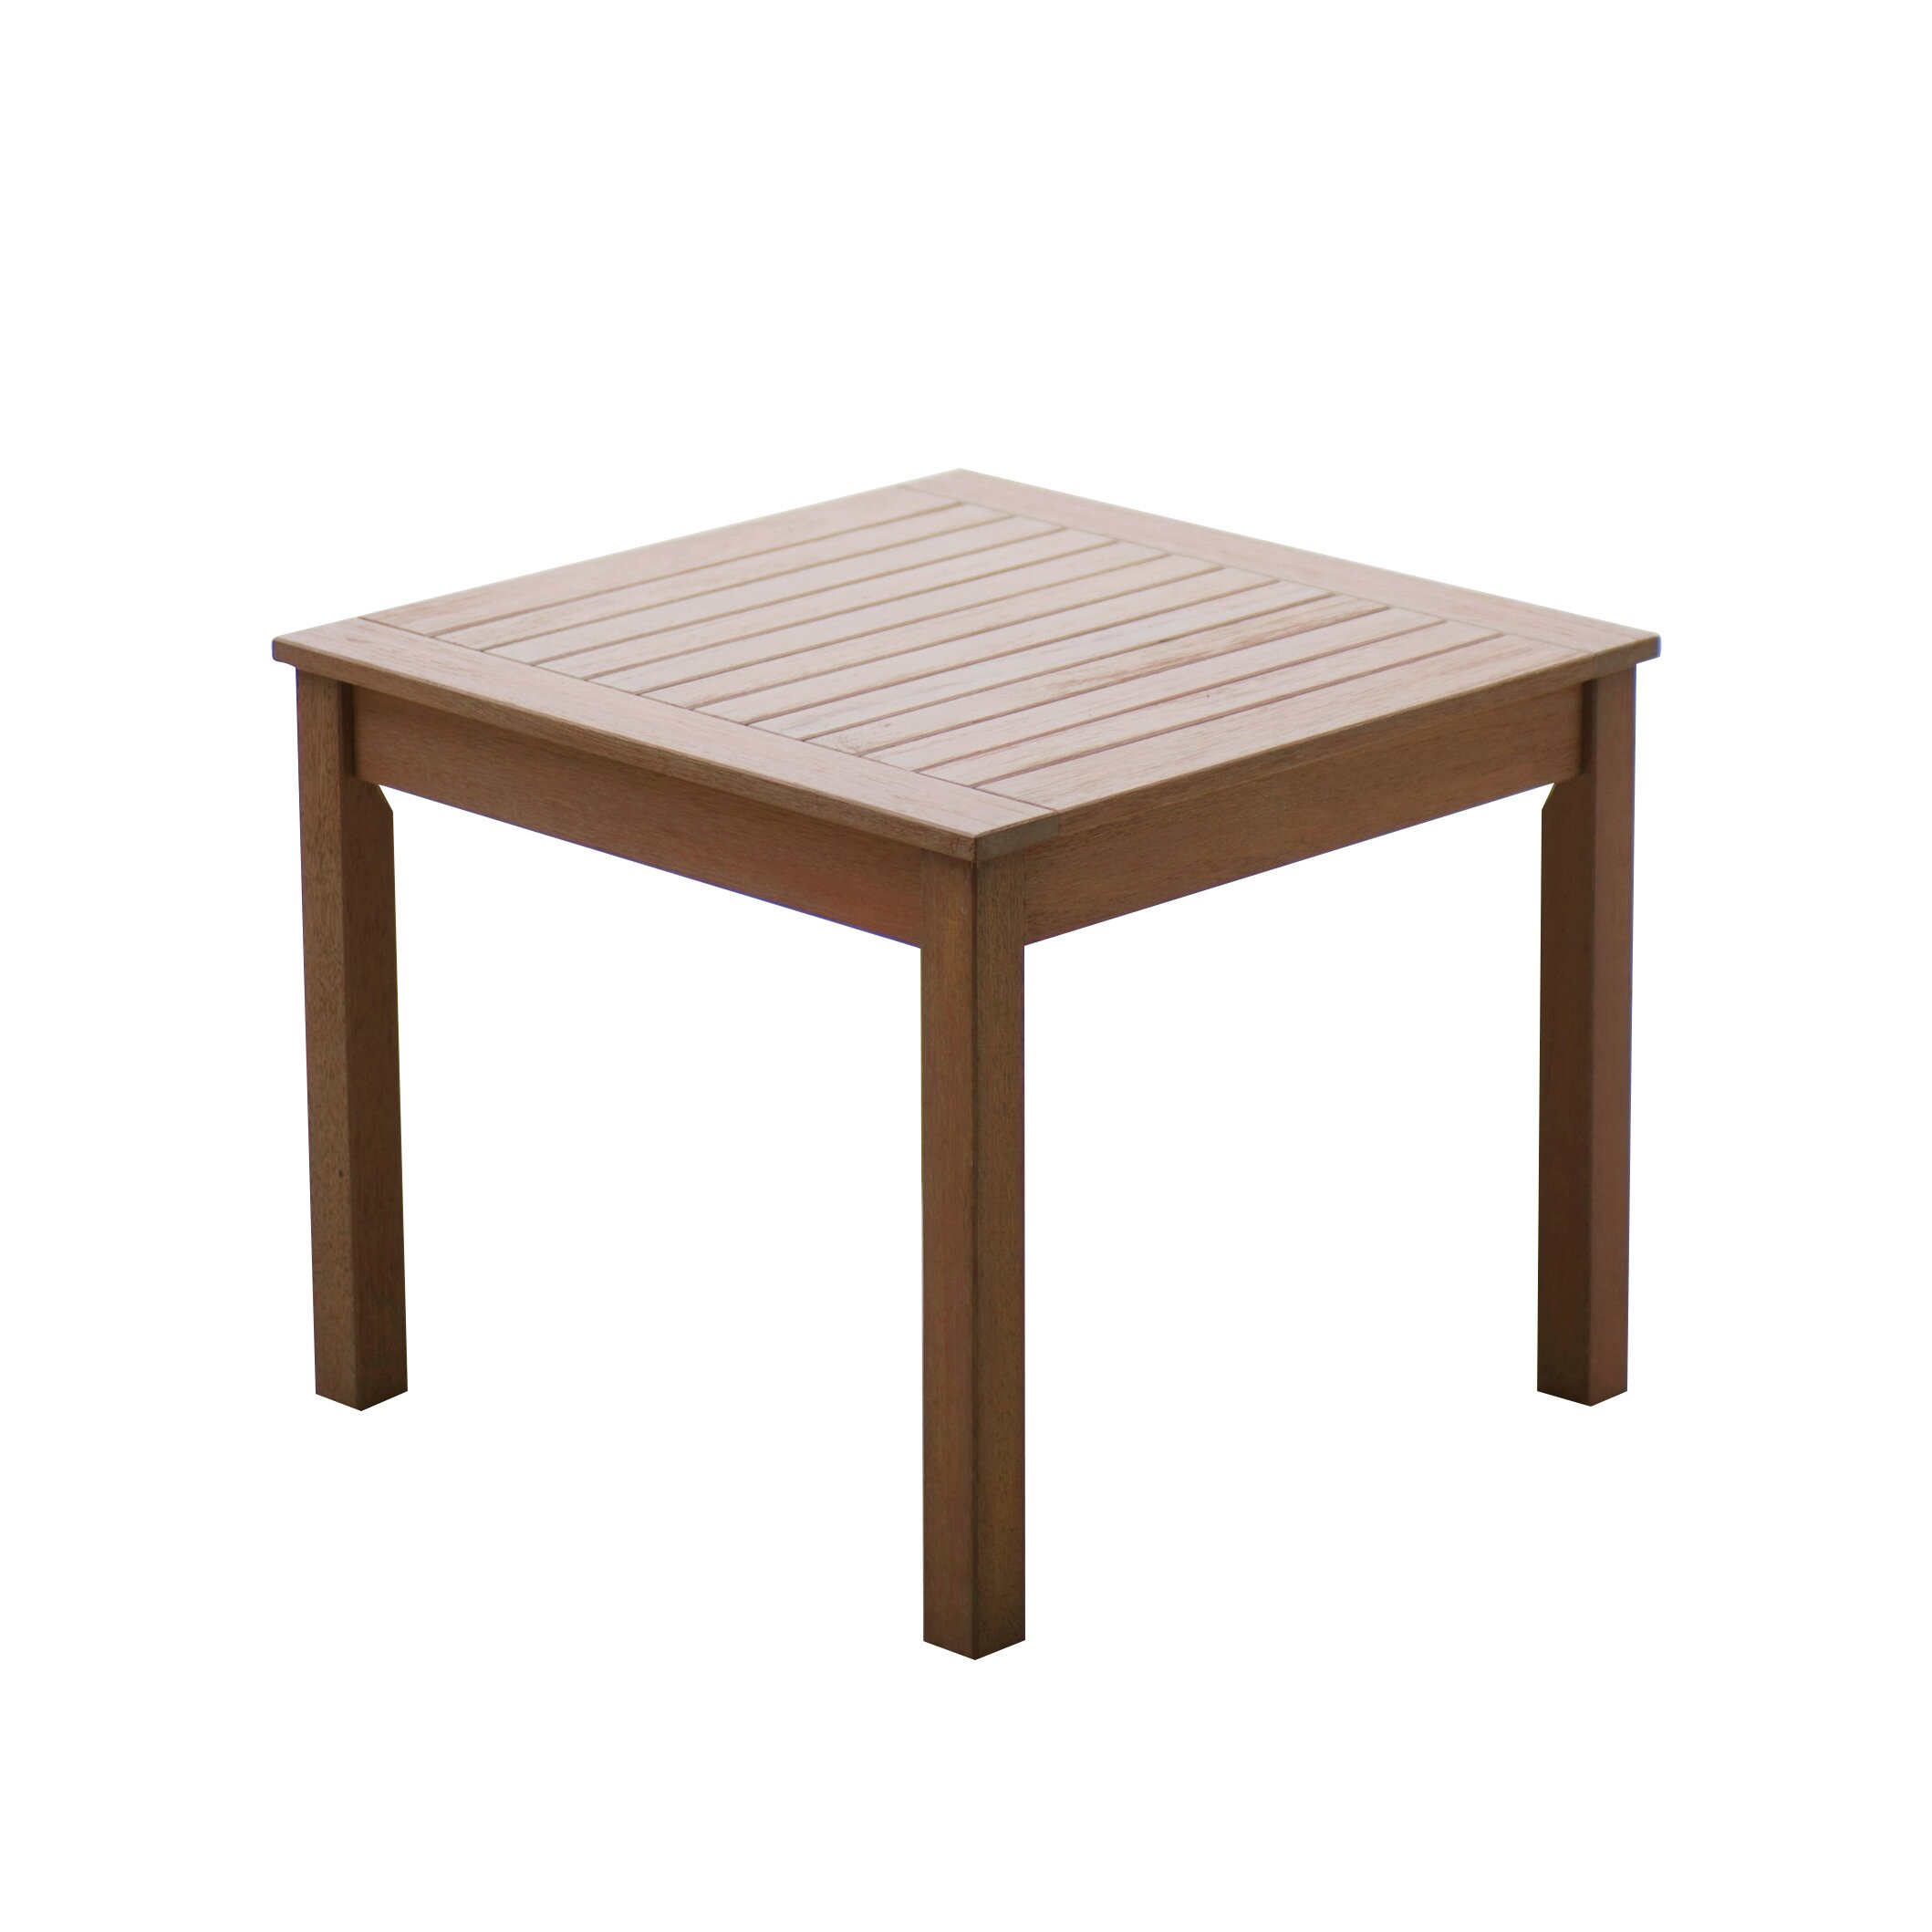 Vintage Casual Coffee Tables: Cambridge Casual Willow Coffee Table